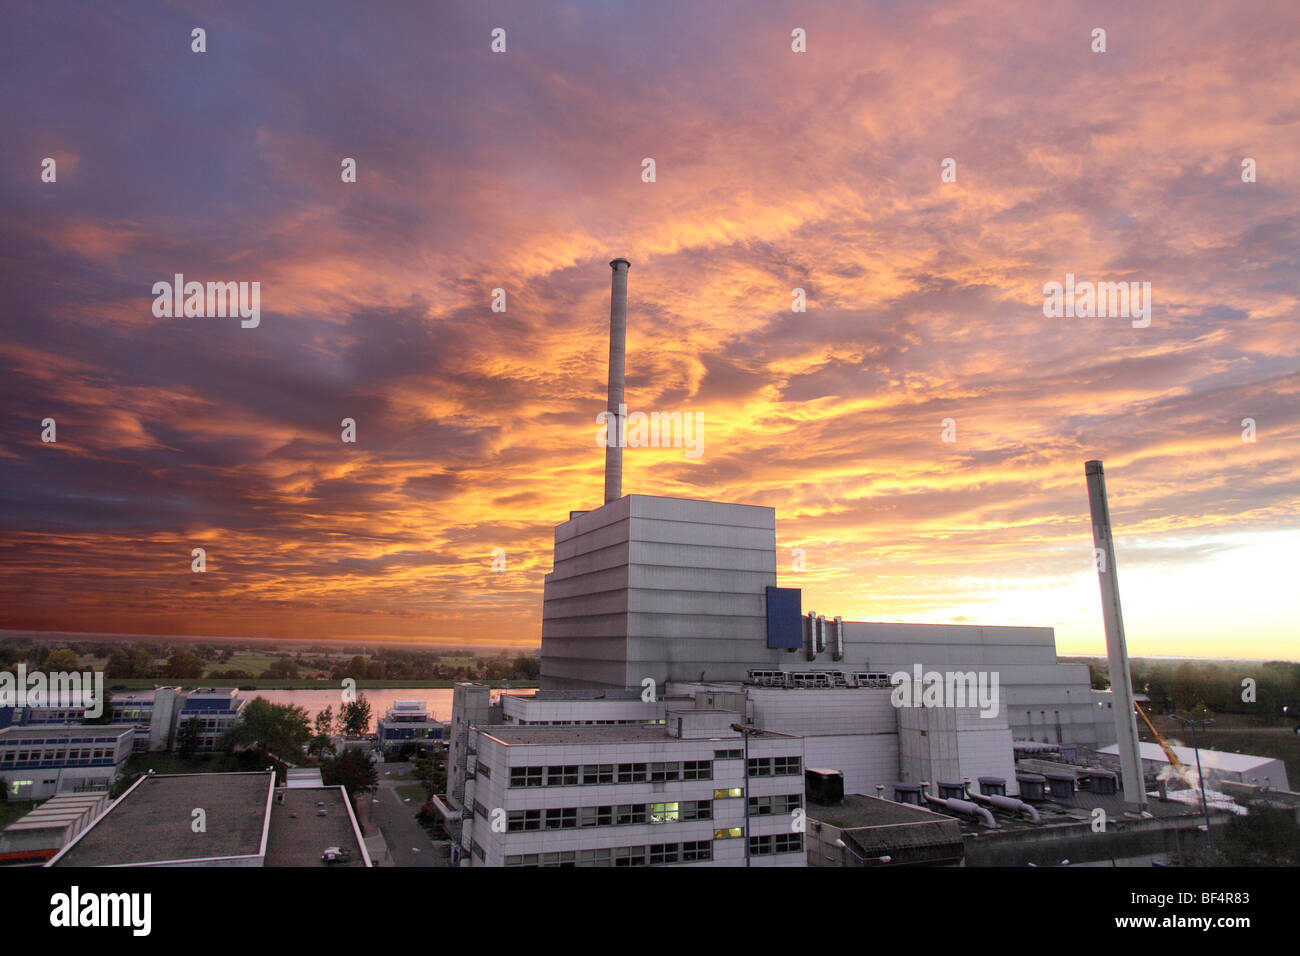 Atomic power plant Kruemmel, run by the company Vattenfall, Germany - Stock Image